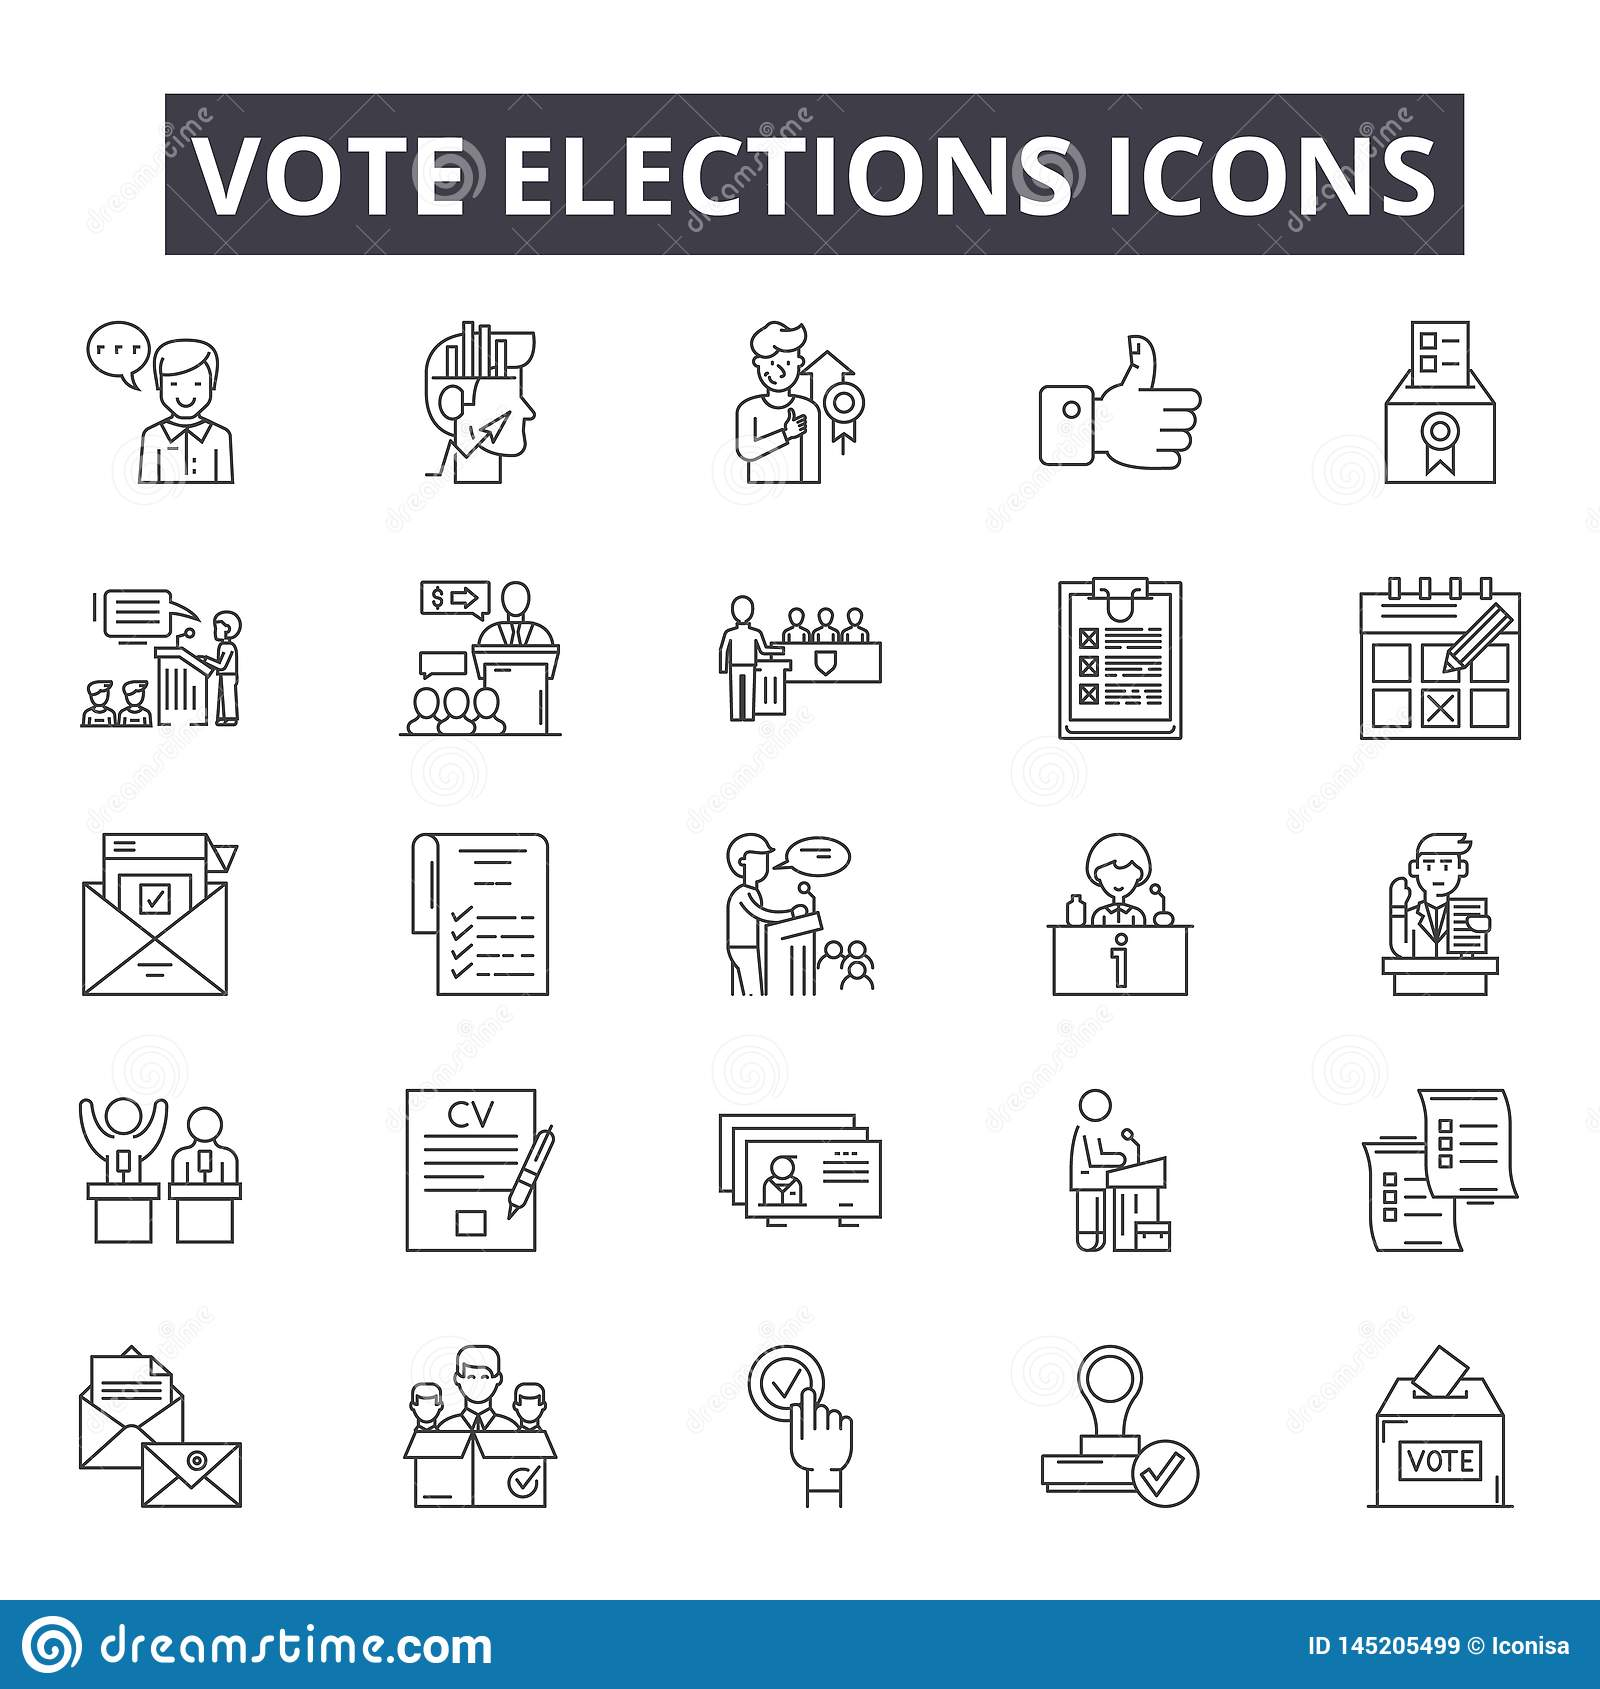 Vote elections line icons, signs, vector set, outline illustration concept